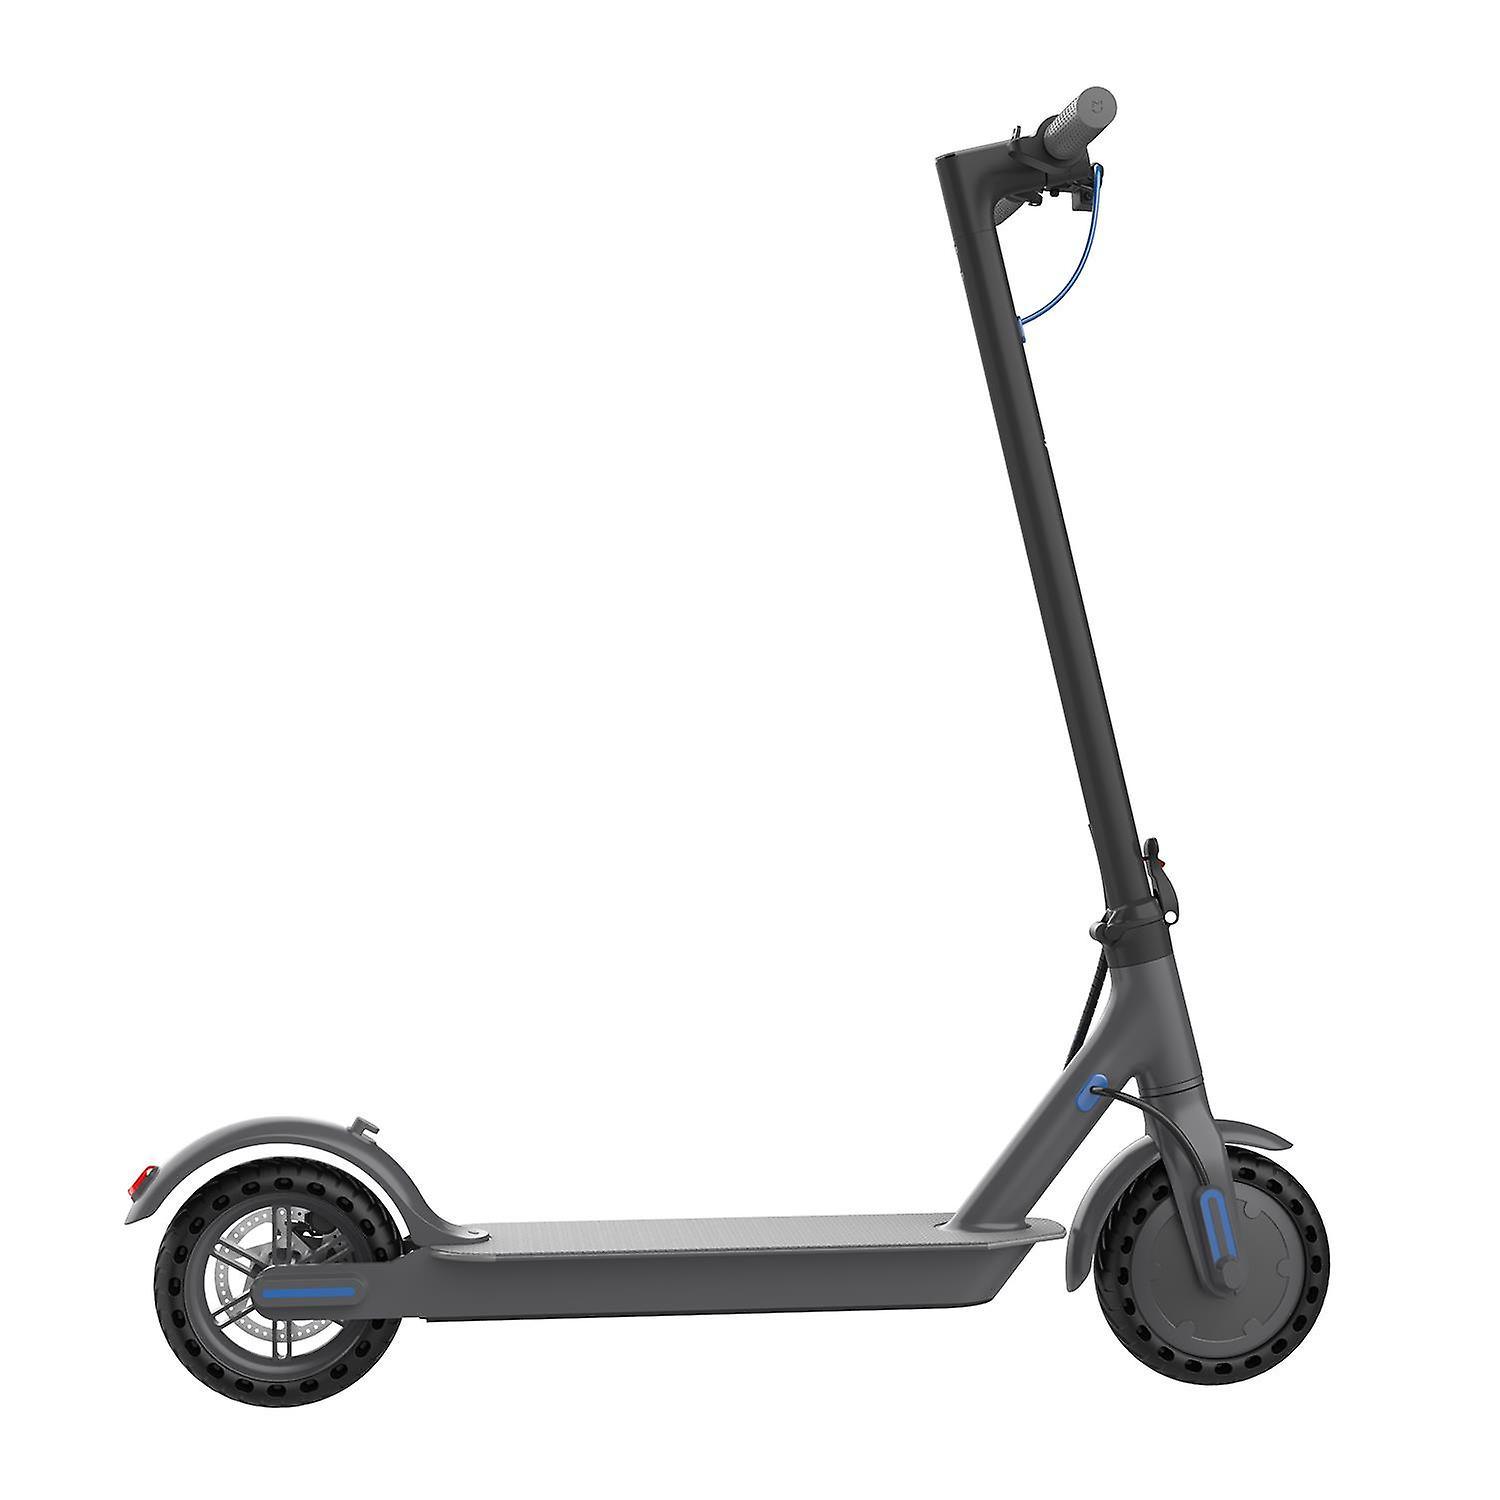 Electric Scooter CITYSPORTS HB17 Foldable with APP & Bluetooth,350W,8.5 inch